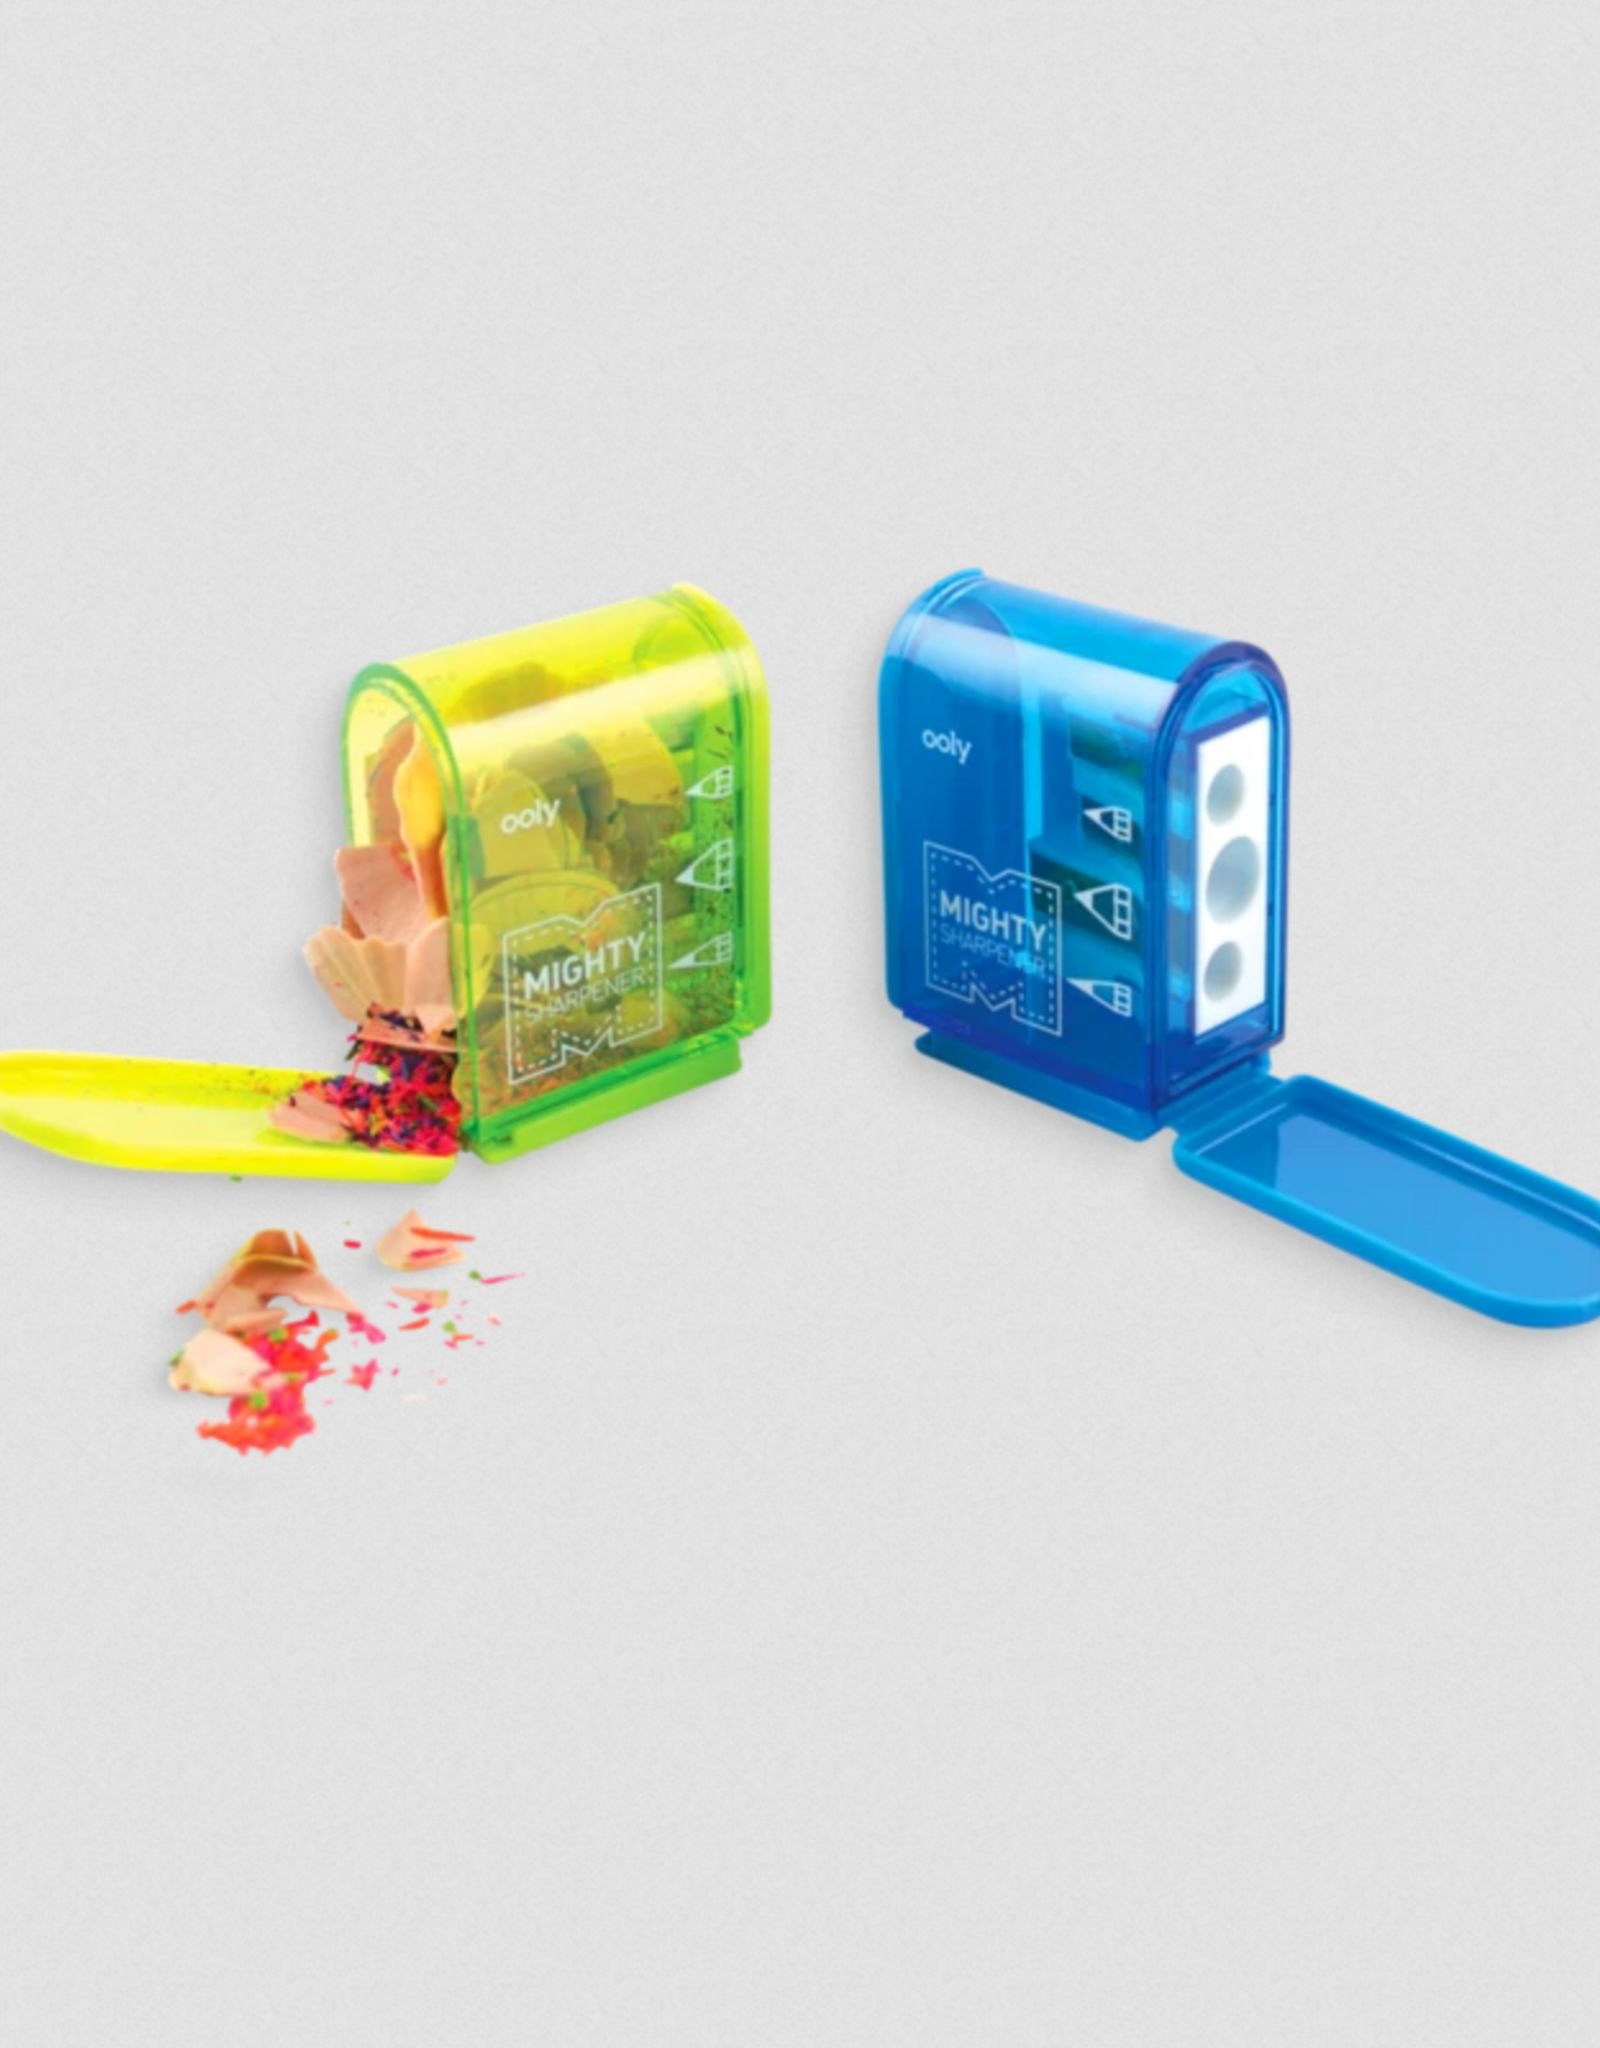 Ooly Mighty Sharpeners